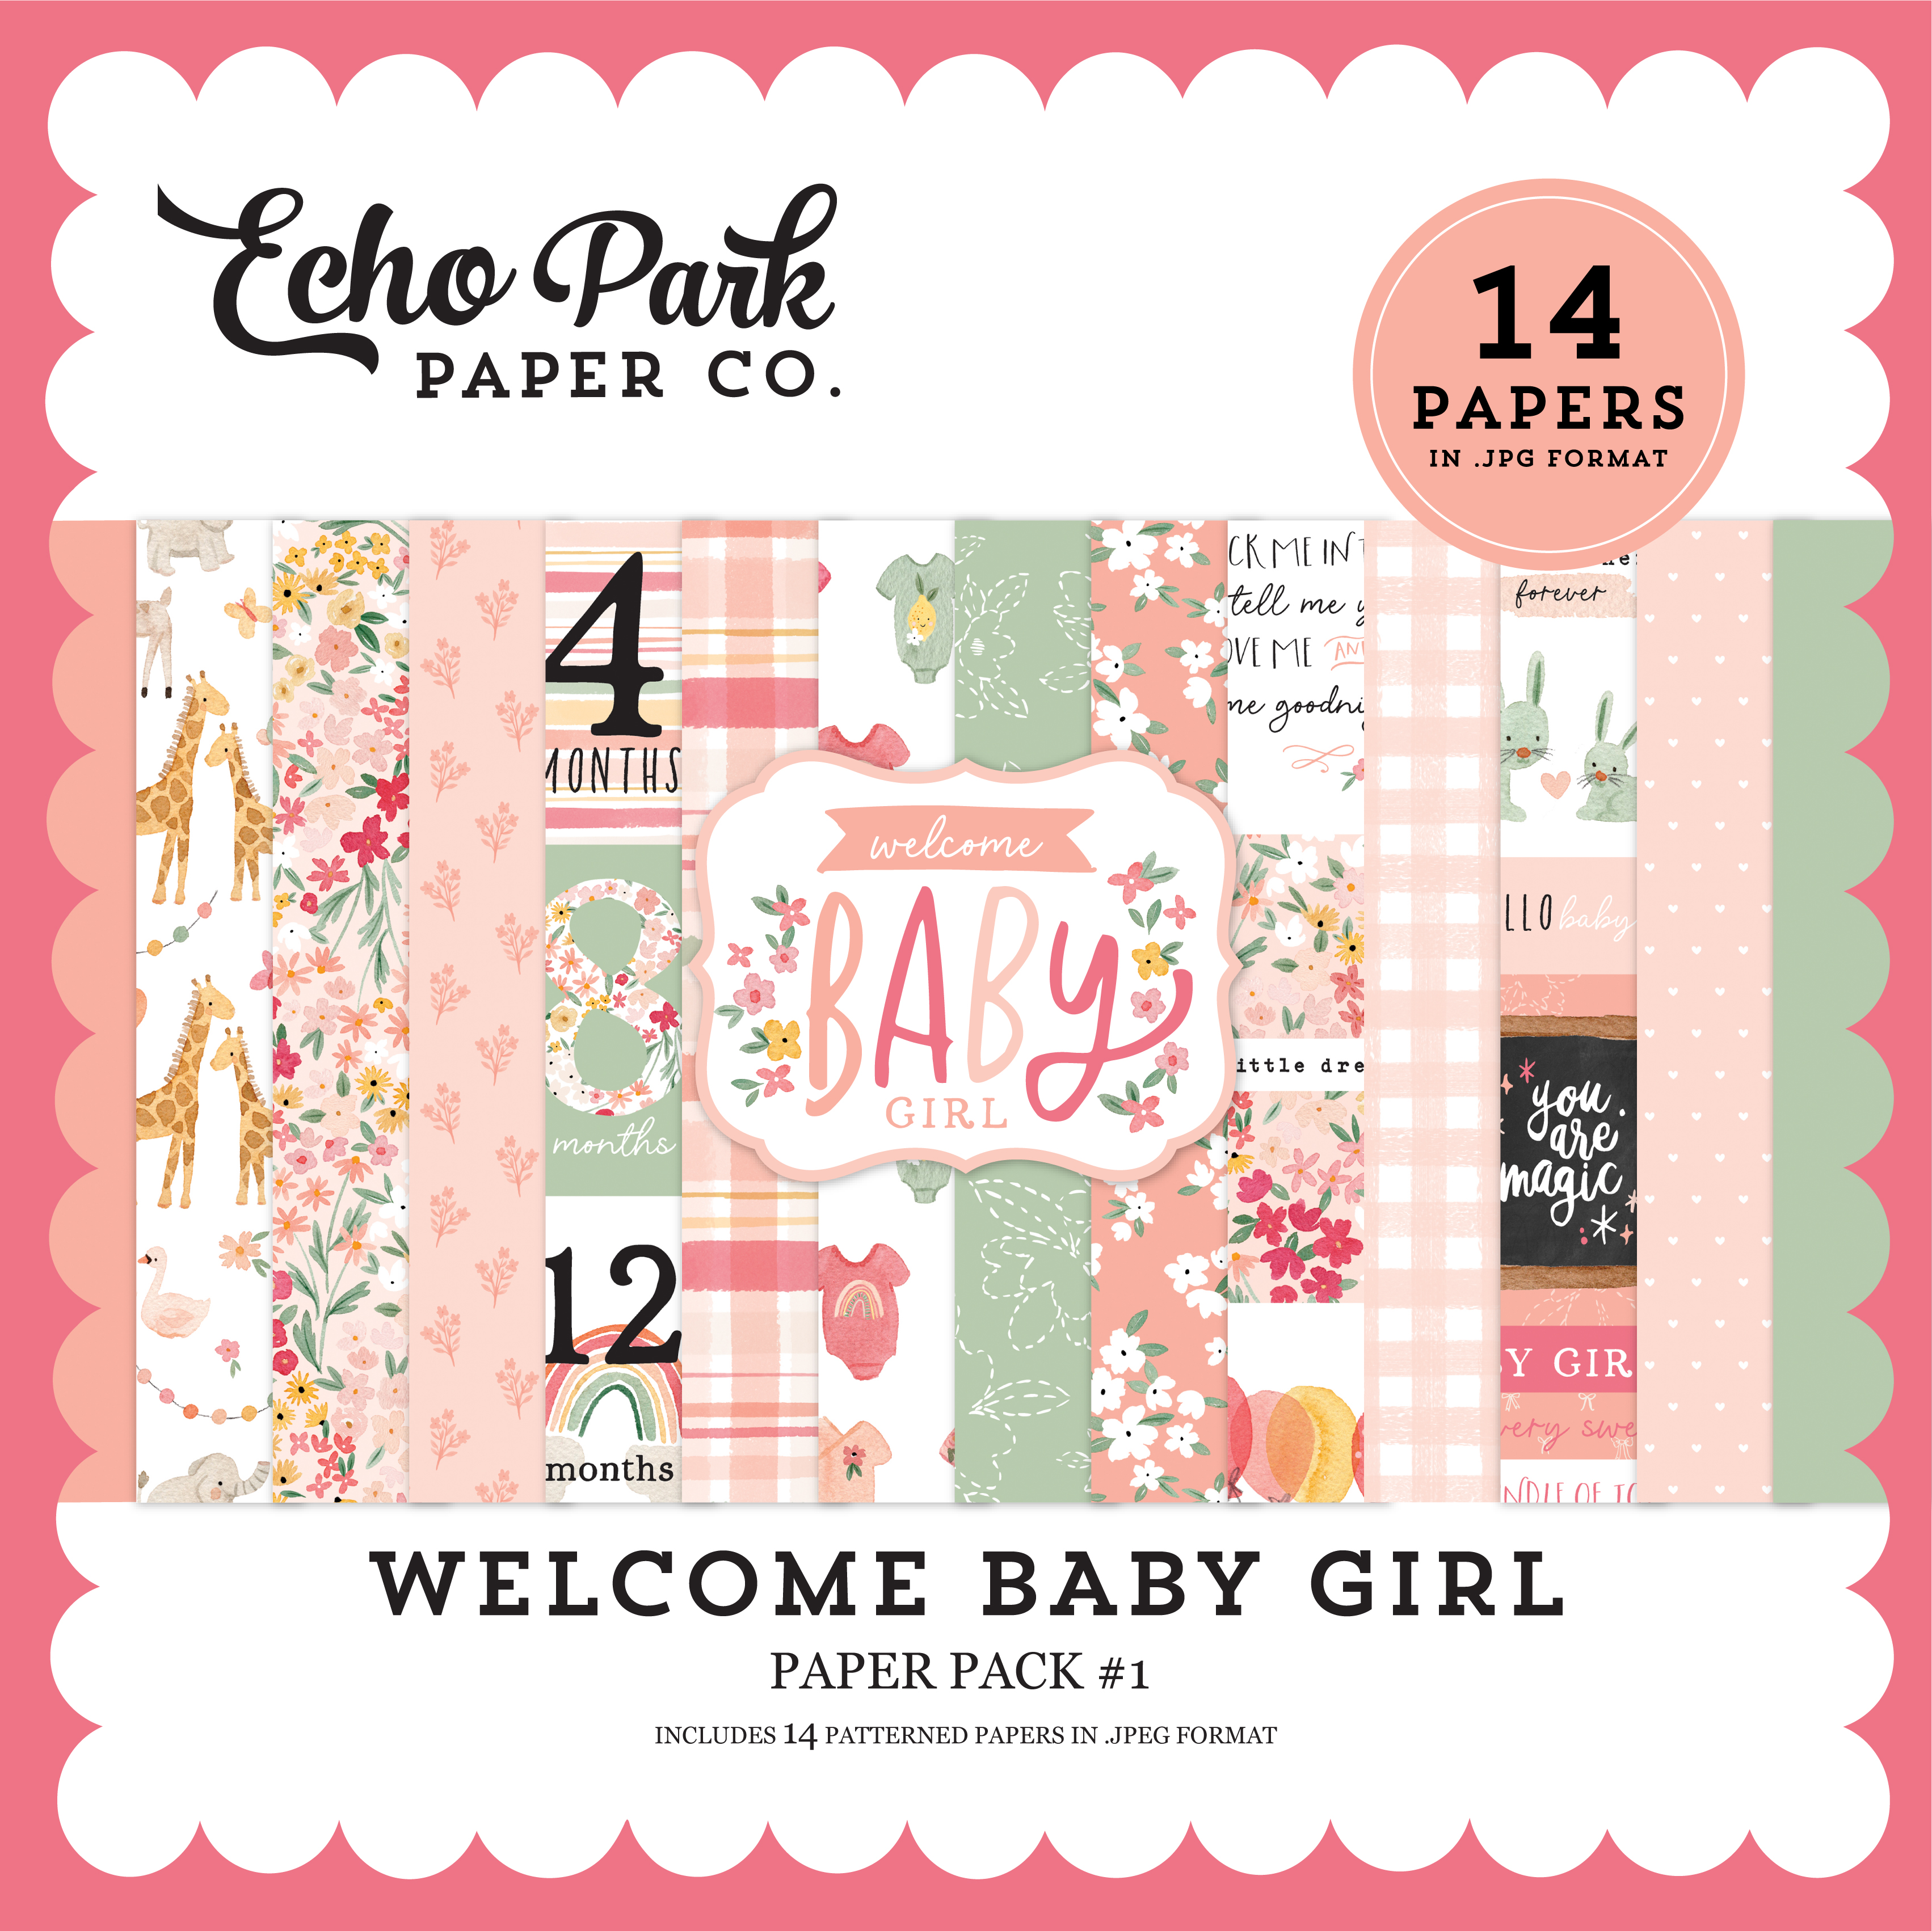 Welcome Baby Girl Paper Pack #1